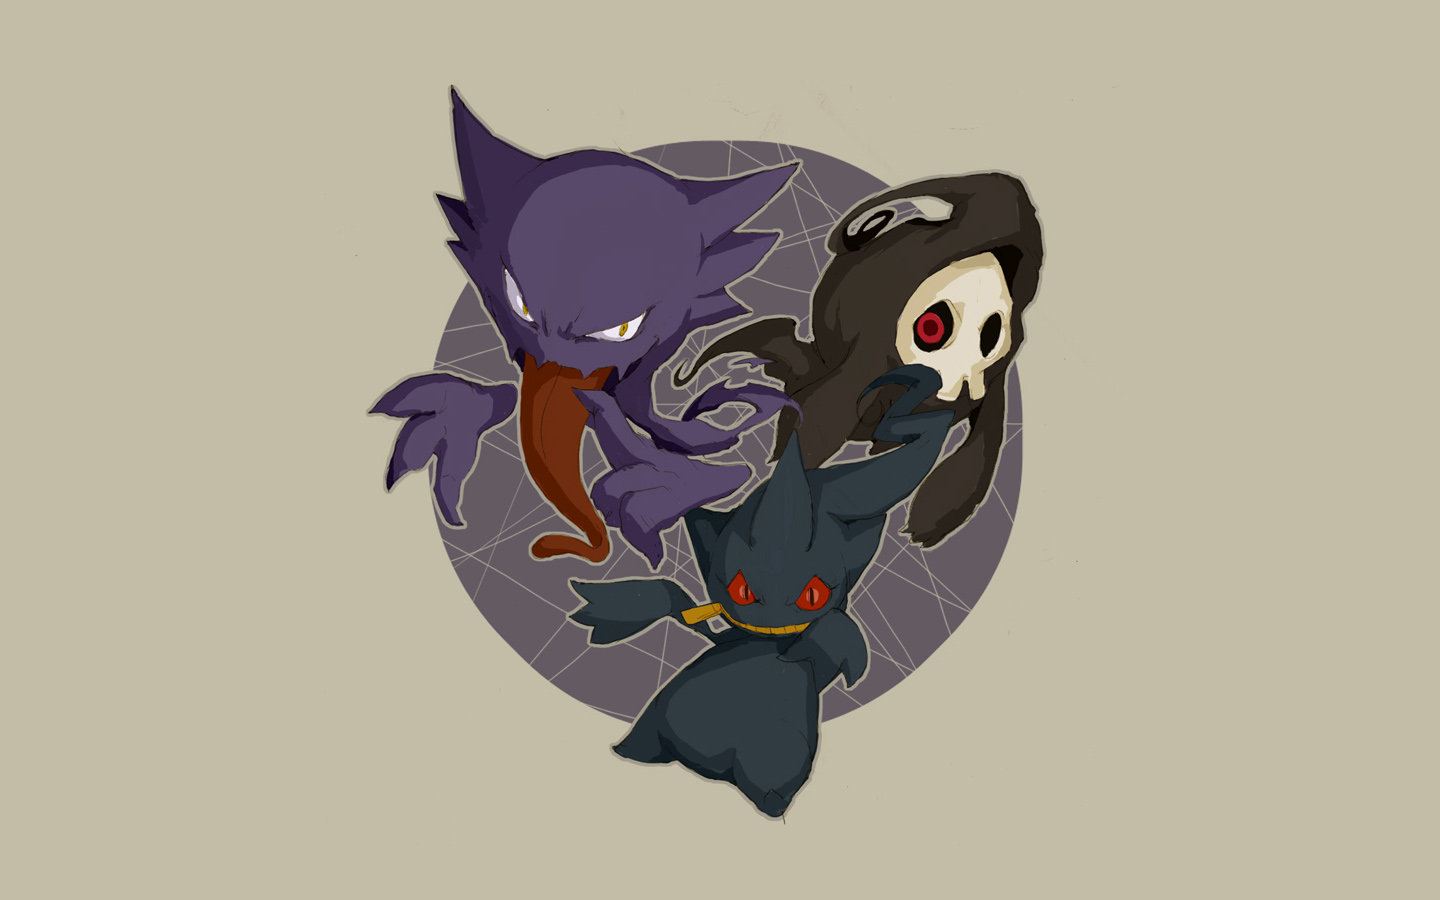 Download hd 1440x900 Haunter (Pokemon) PC wallpaper ID:280344 for free